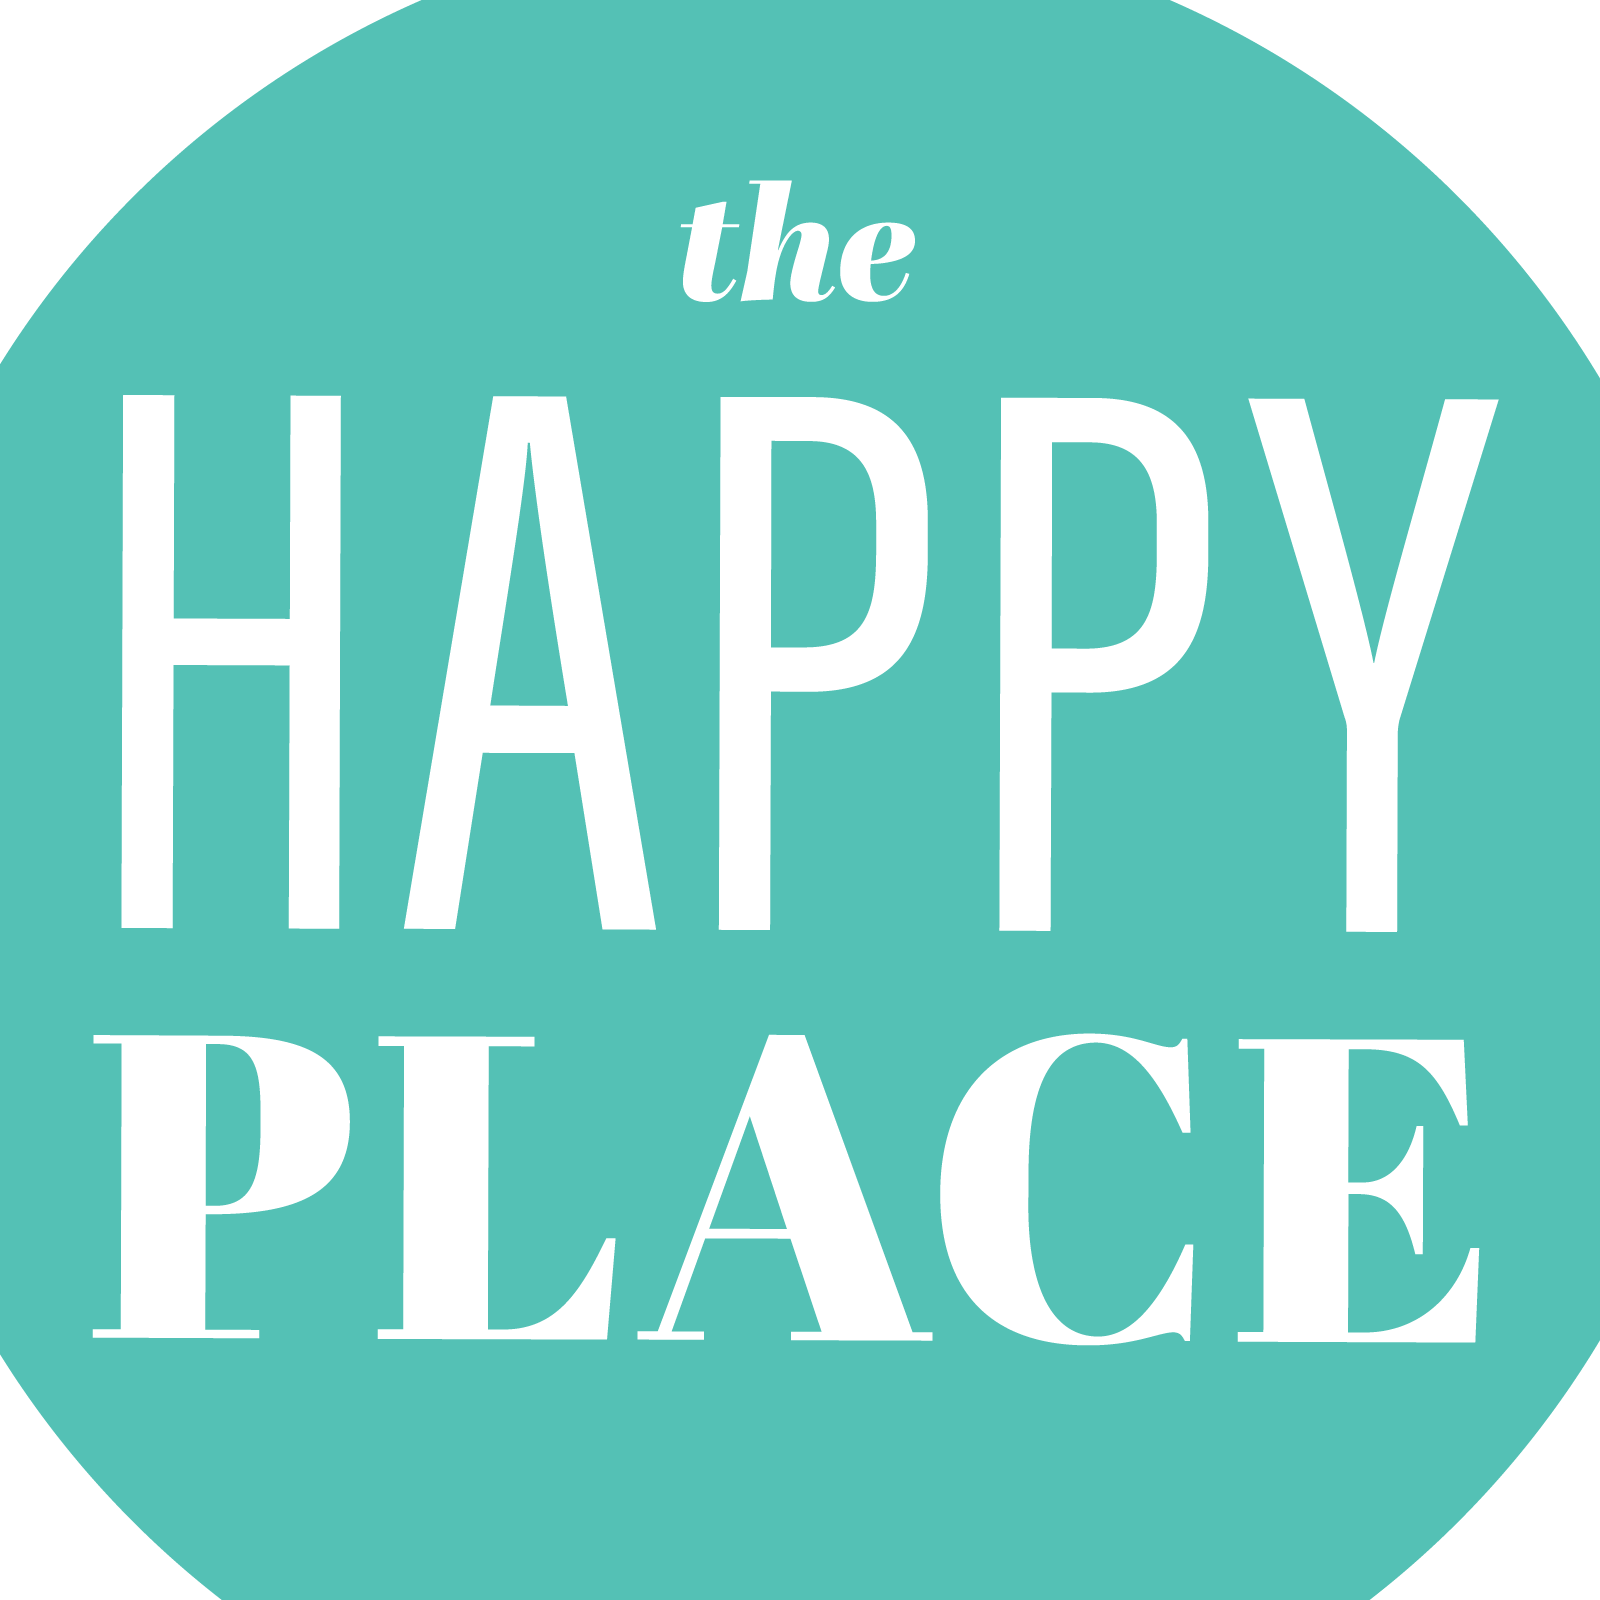 The Happy Place    Happy Place is a flexible event space for parties, speaking events, live music, and more. It's also a private coworking community for awesome people. Many thanks for the use of their podcasting equipment!